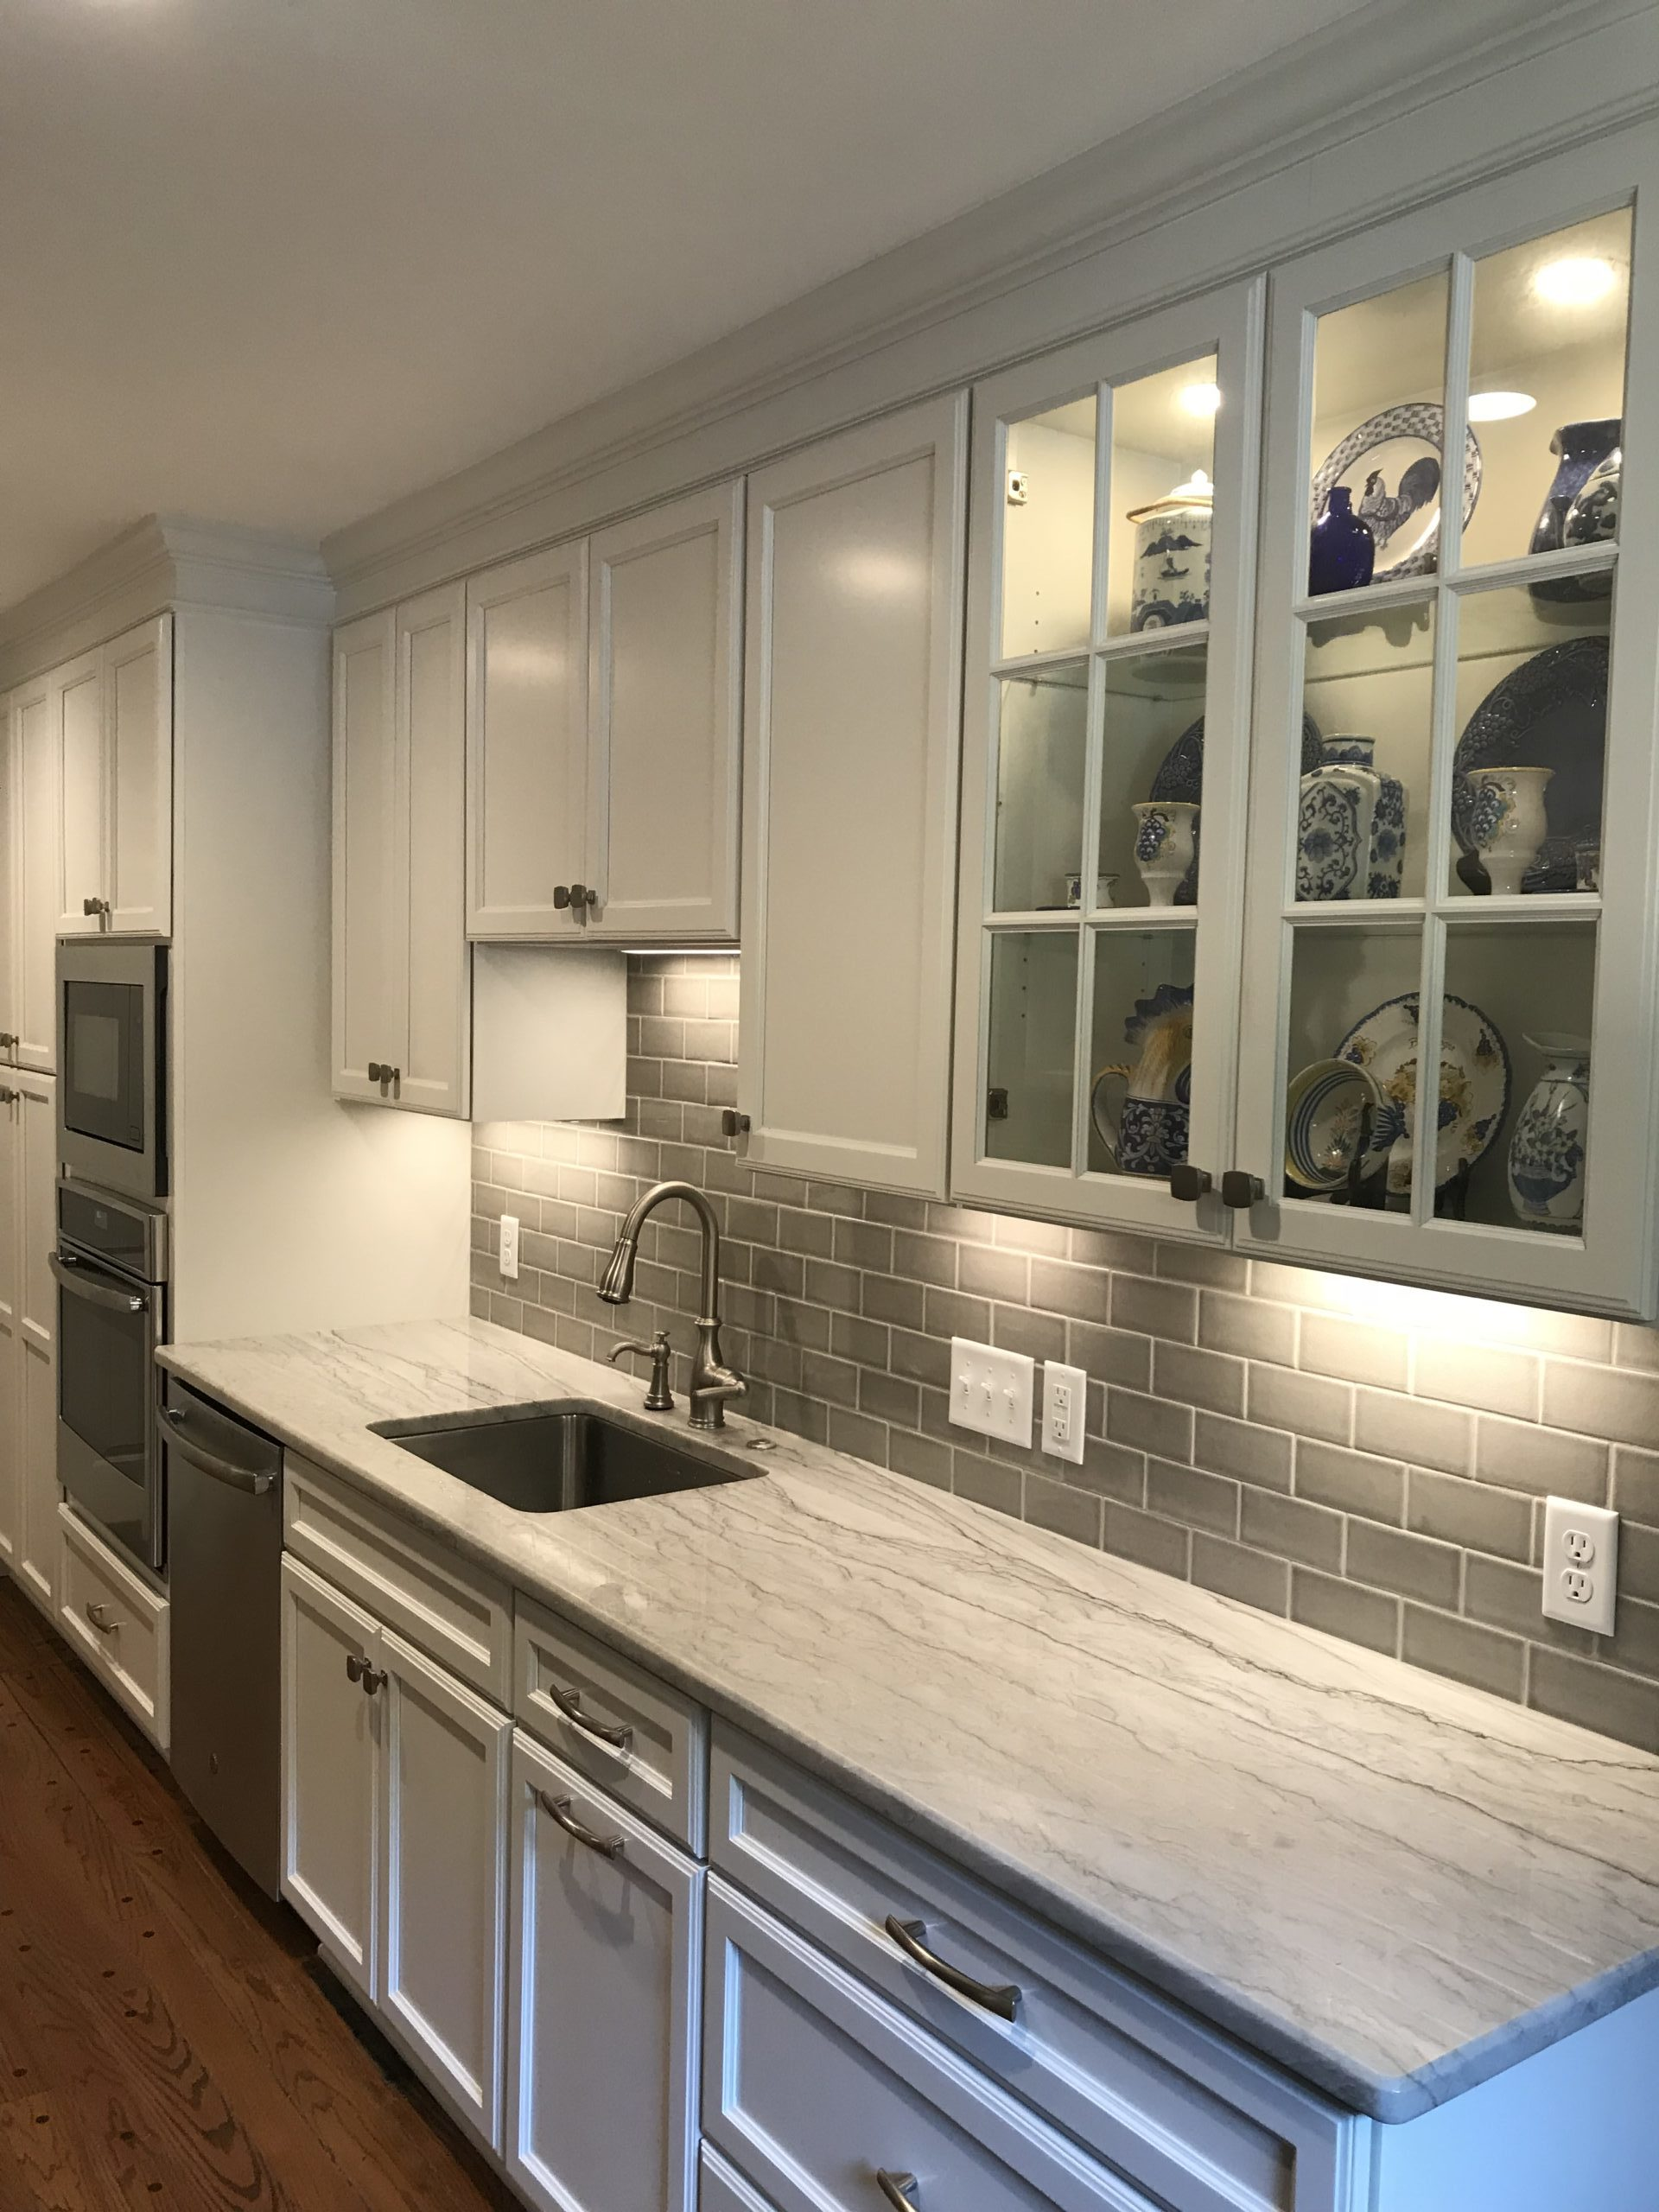 kitchen-remodeling-work-TAG-Builder-212-MG-Kitchen-Remodel-1-scaled-e1586520649907